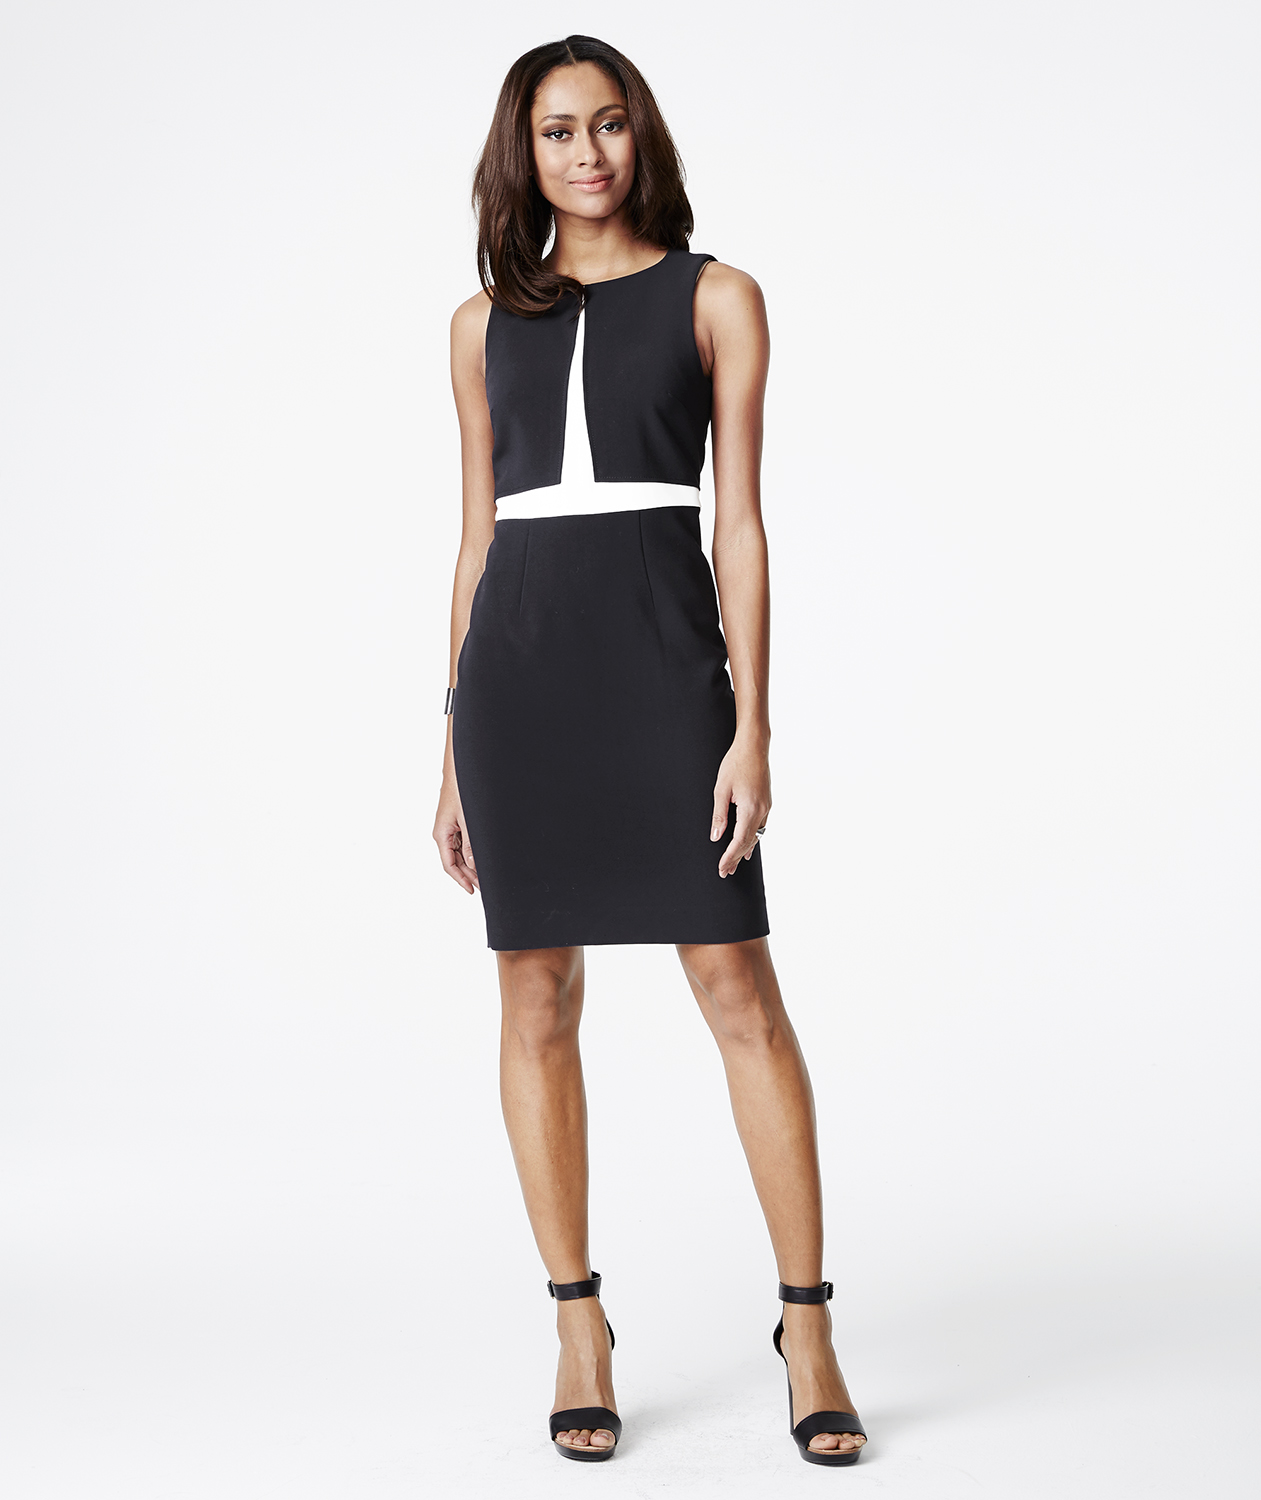 6 Great Work Dresses  Real Simple